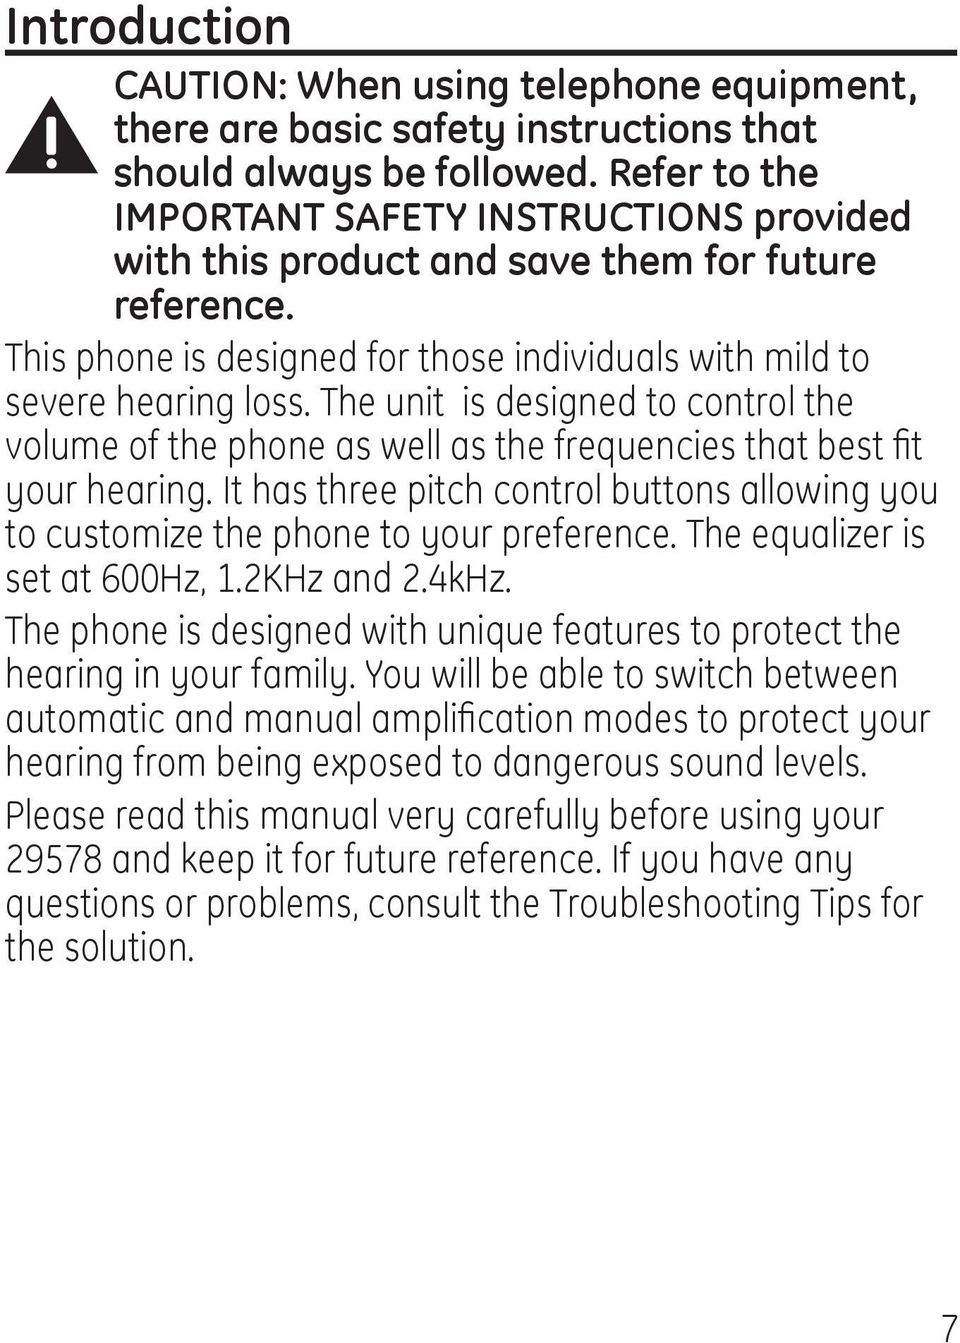 The unit is designed to control the volume of the phone as well as the frequencies that best fit your hearing.